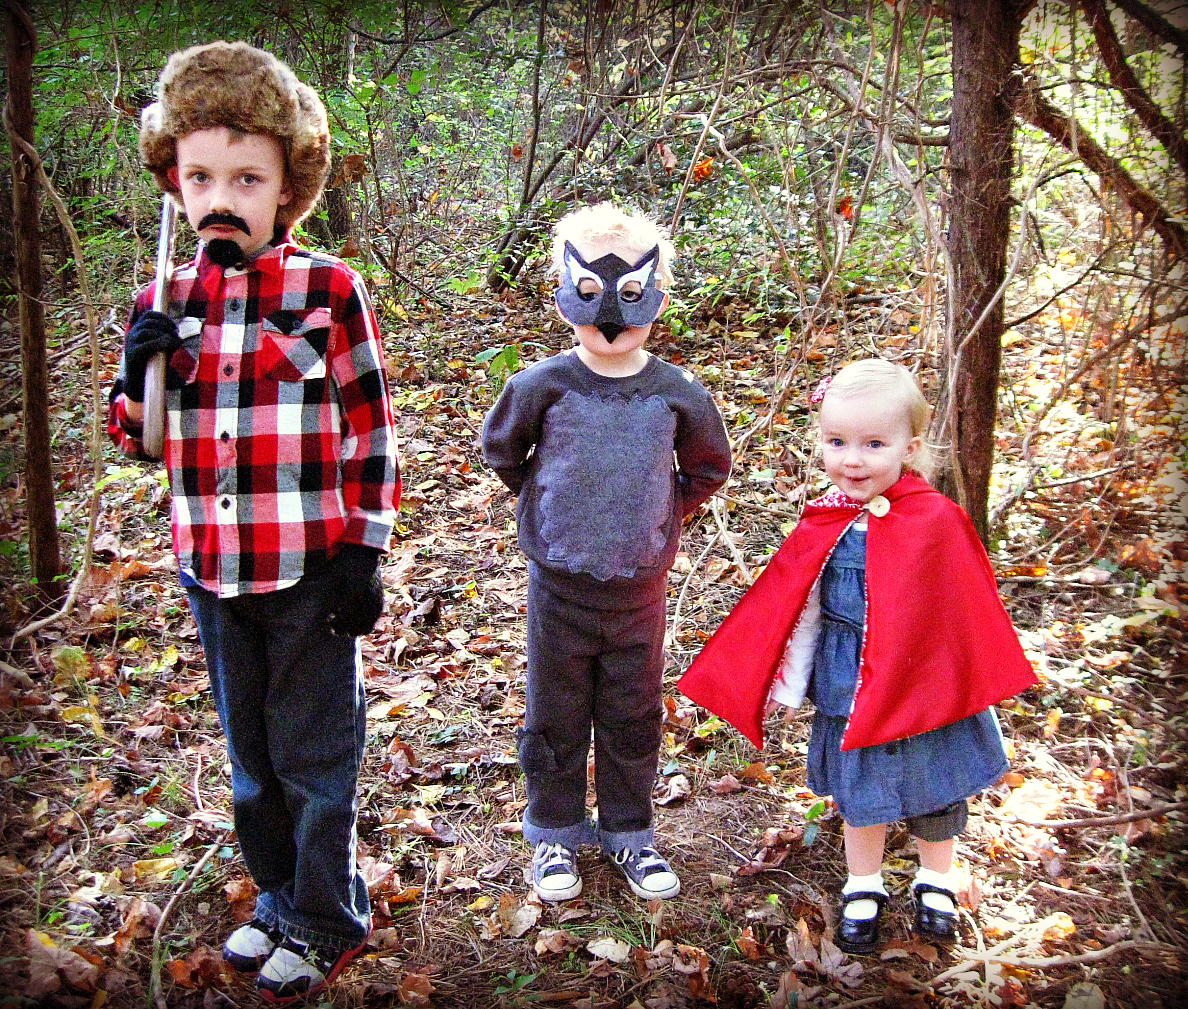 sc 1 st  Freshly Completed & Freshly Completed: Little Red Riding Hood + Big Bad Wolf + Woodsman